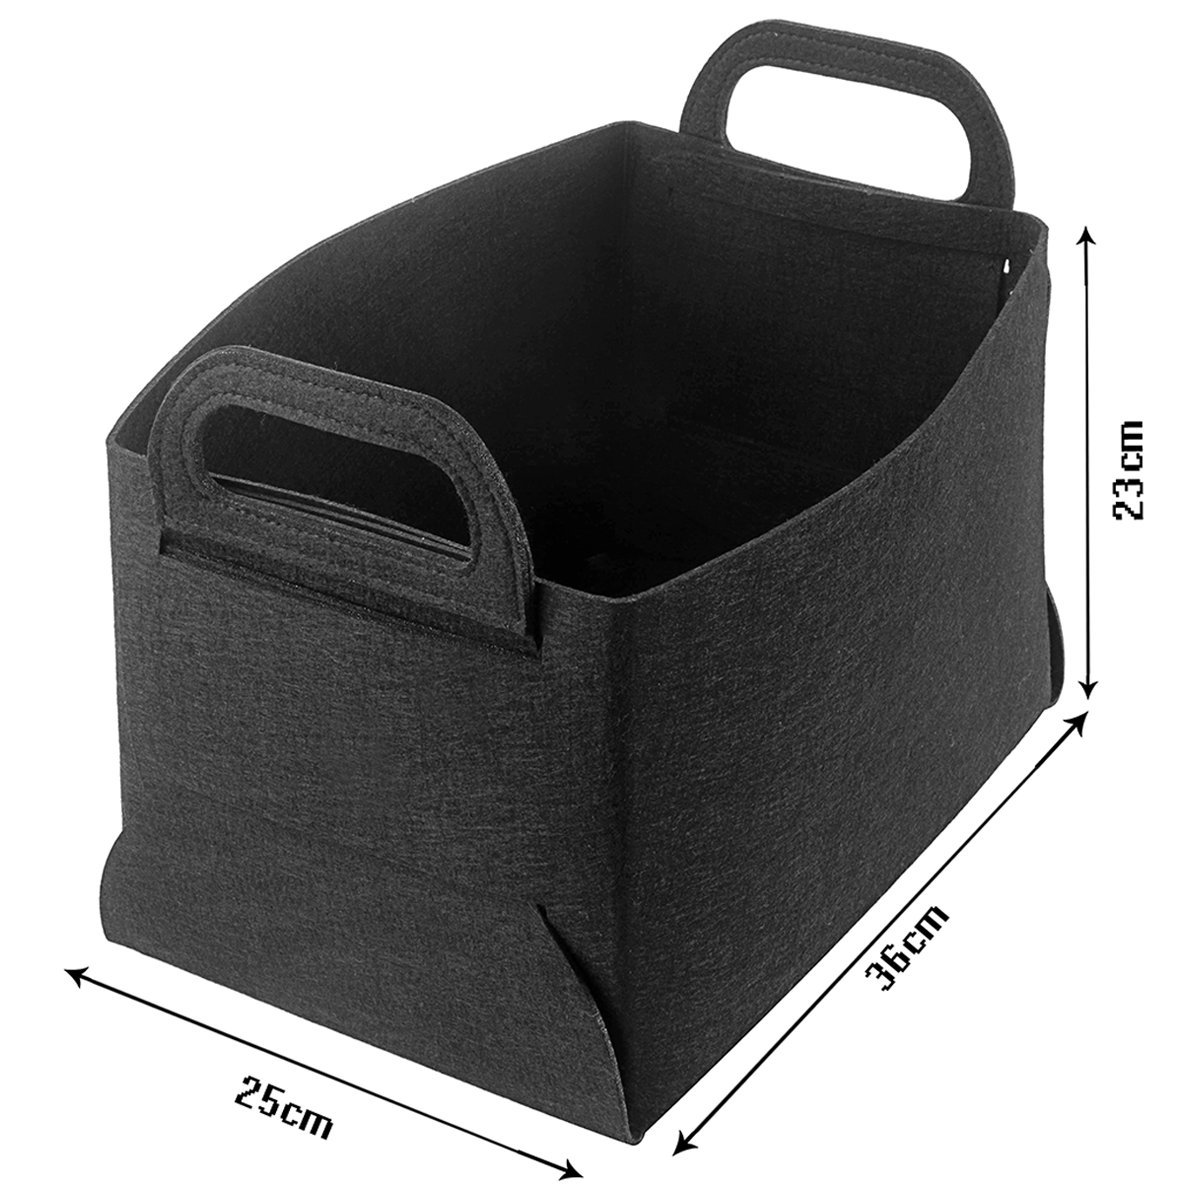 Collapsible Storage Bin Basket Organizing Box Closet Organizer with Handles for Office, Bedroom, Toys, Laundry (Black)